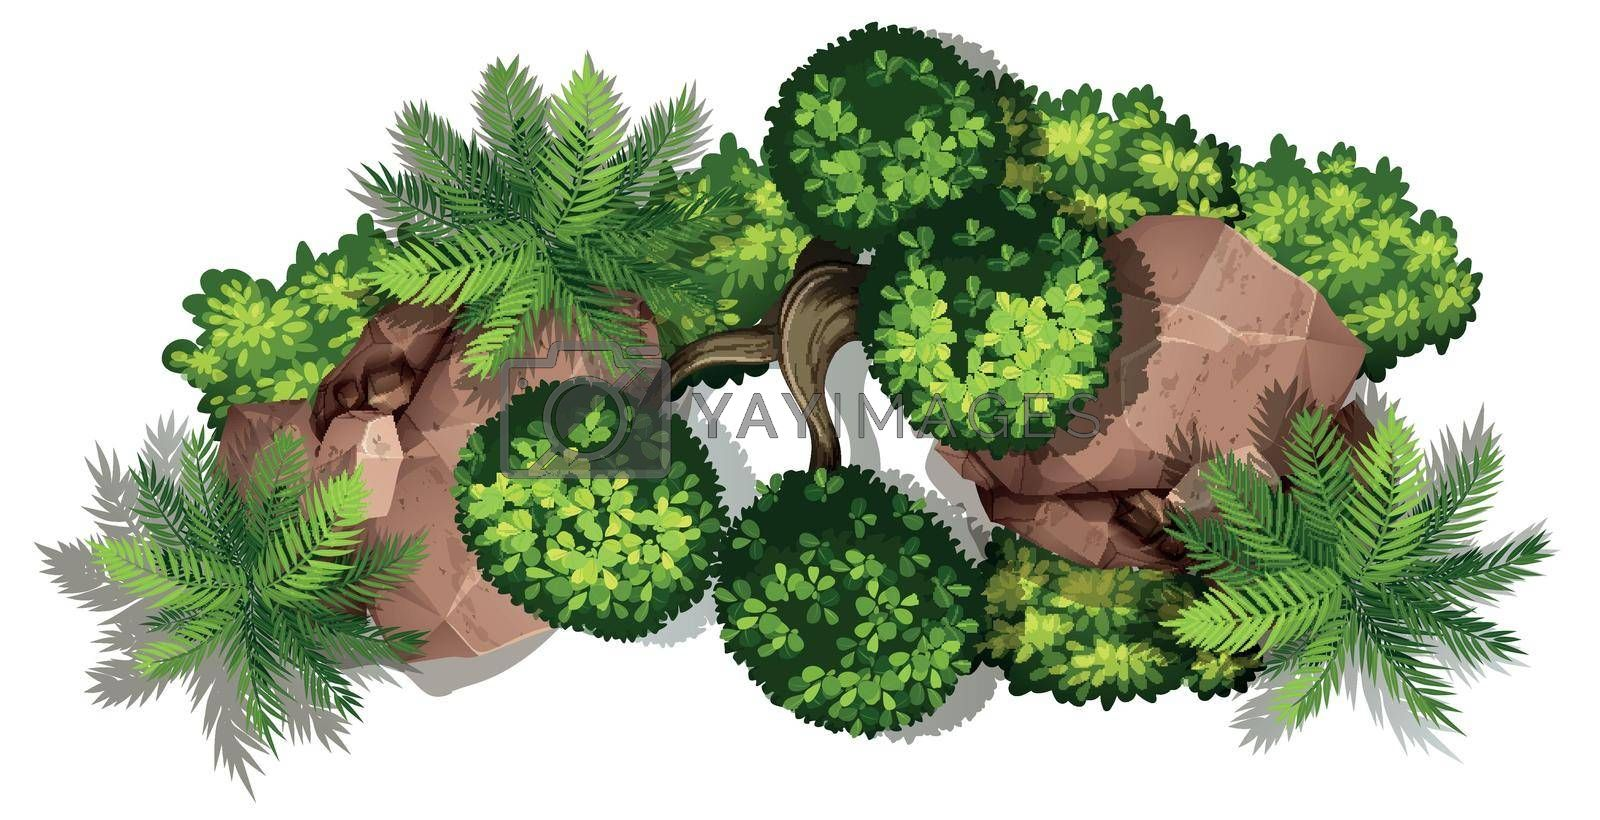 Aerial view of plants and rocks illustration